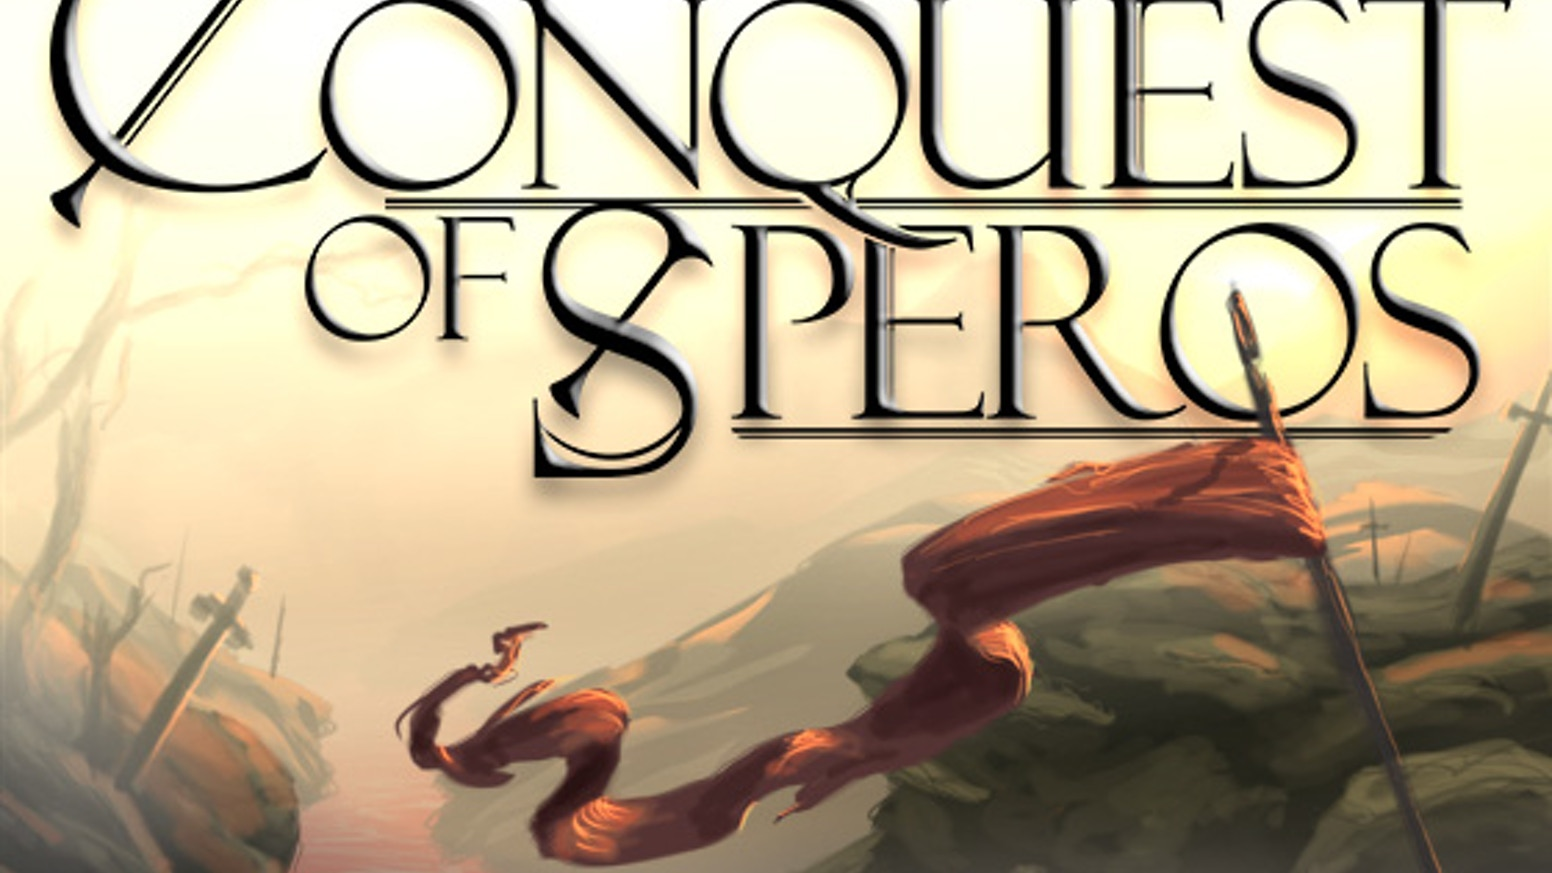 Conquest of Speros is a fun and fast card game where you take control of an army trying to secure land and resources for your race.